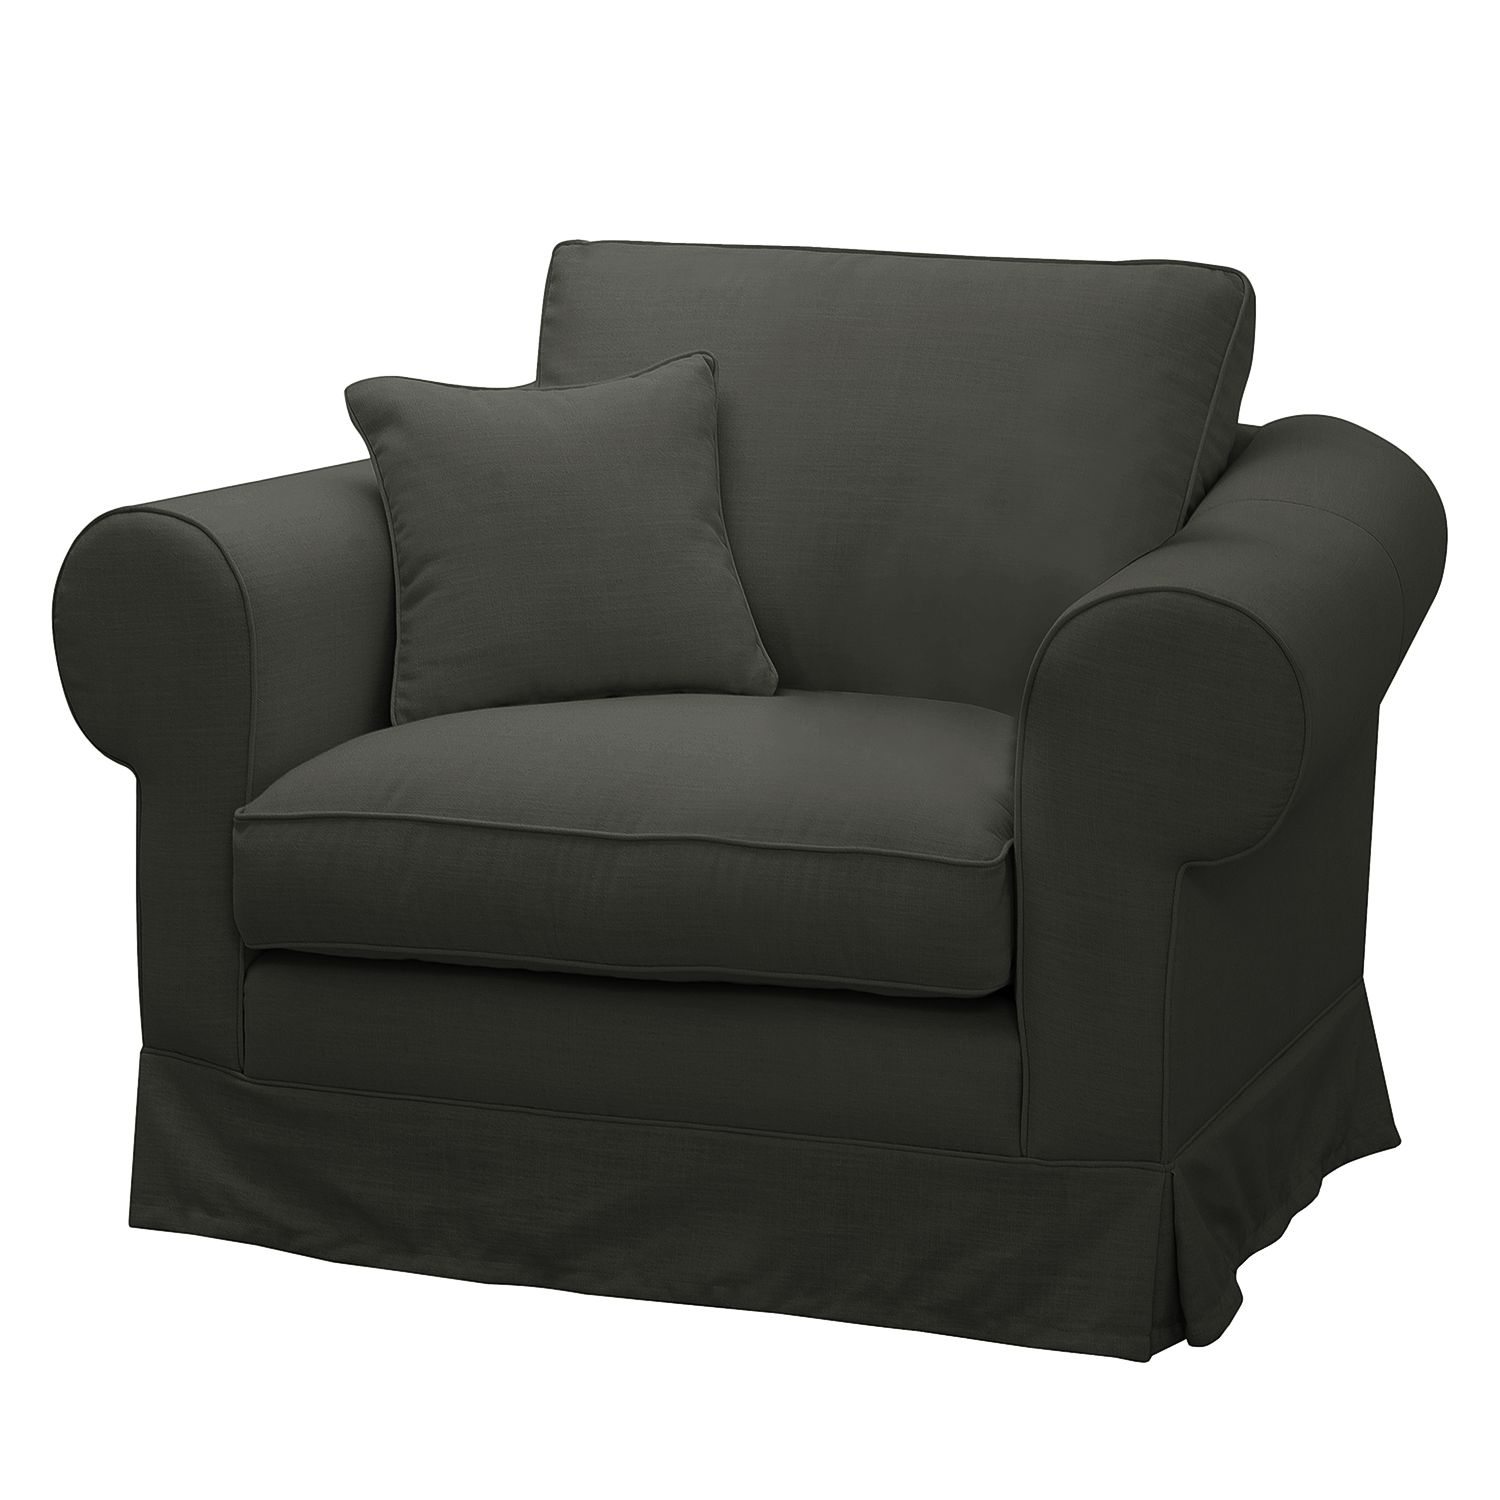 Fauteuil Cowling Tissu - Anthracite, Maison Belfort